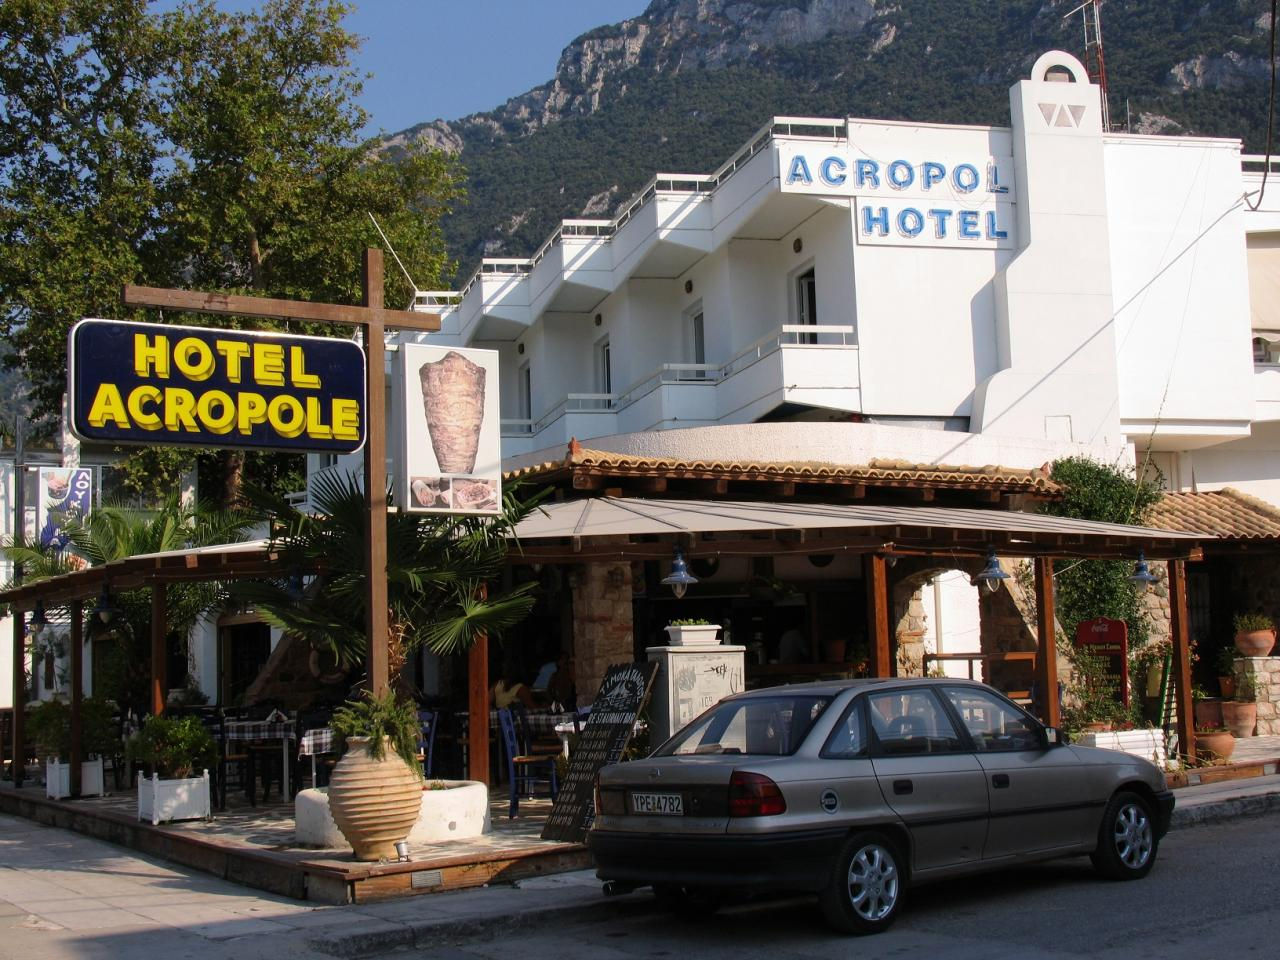 Hotel Acropole